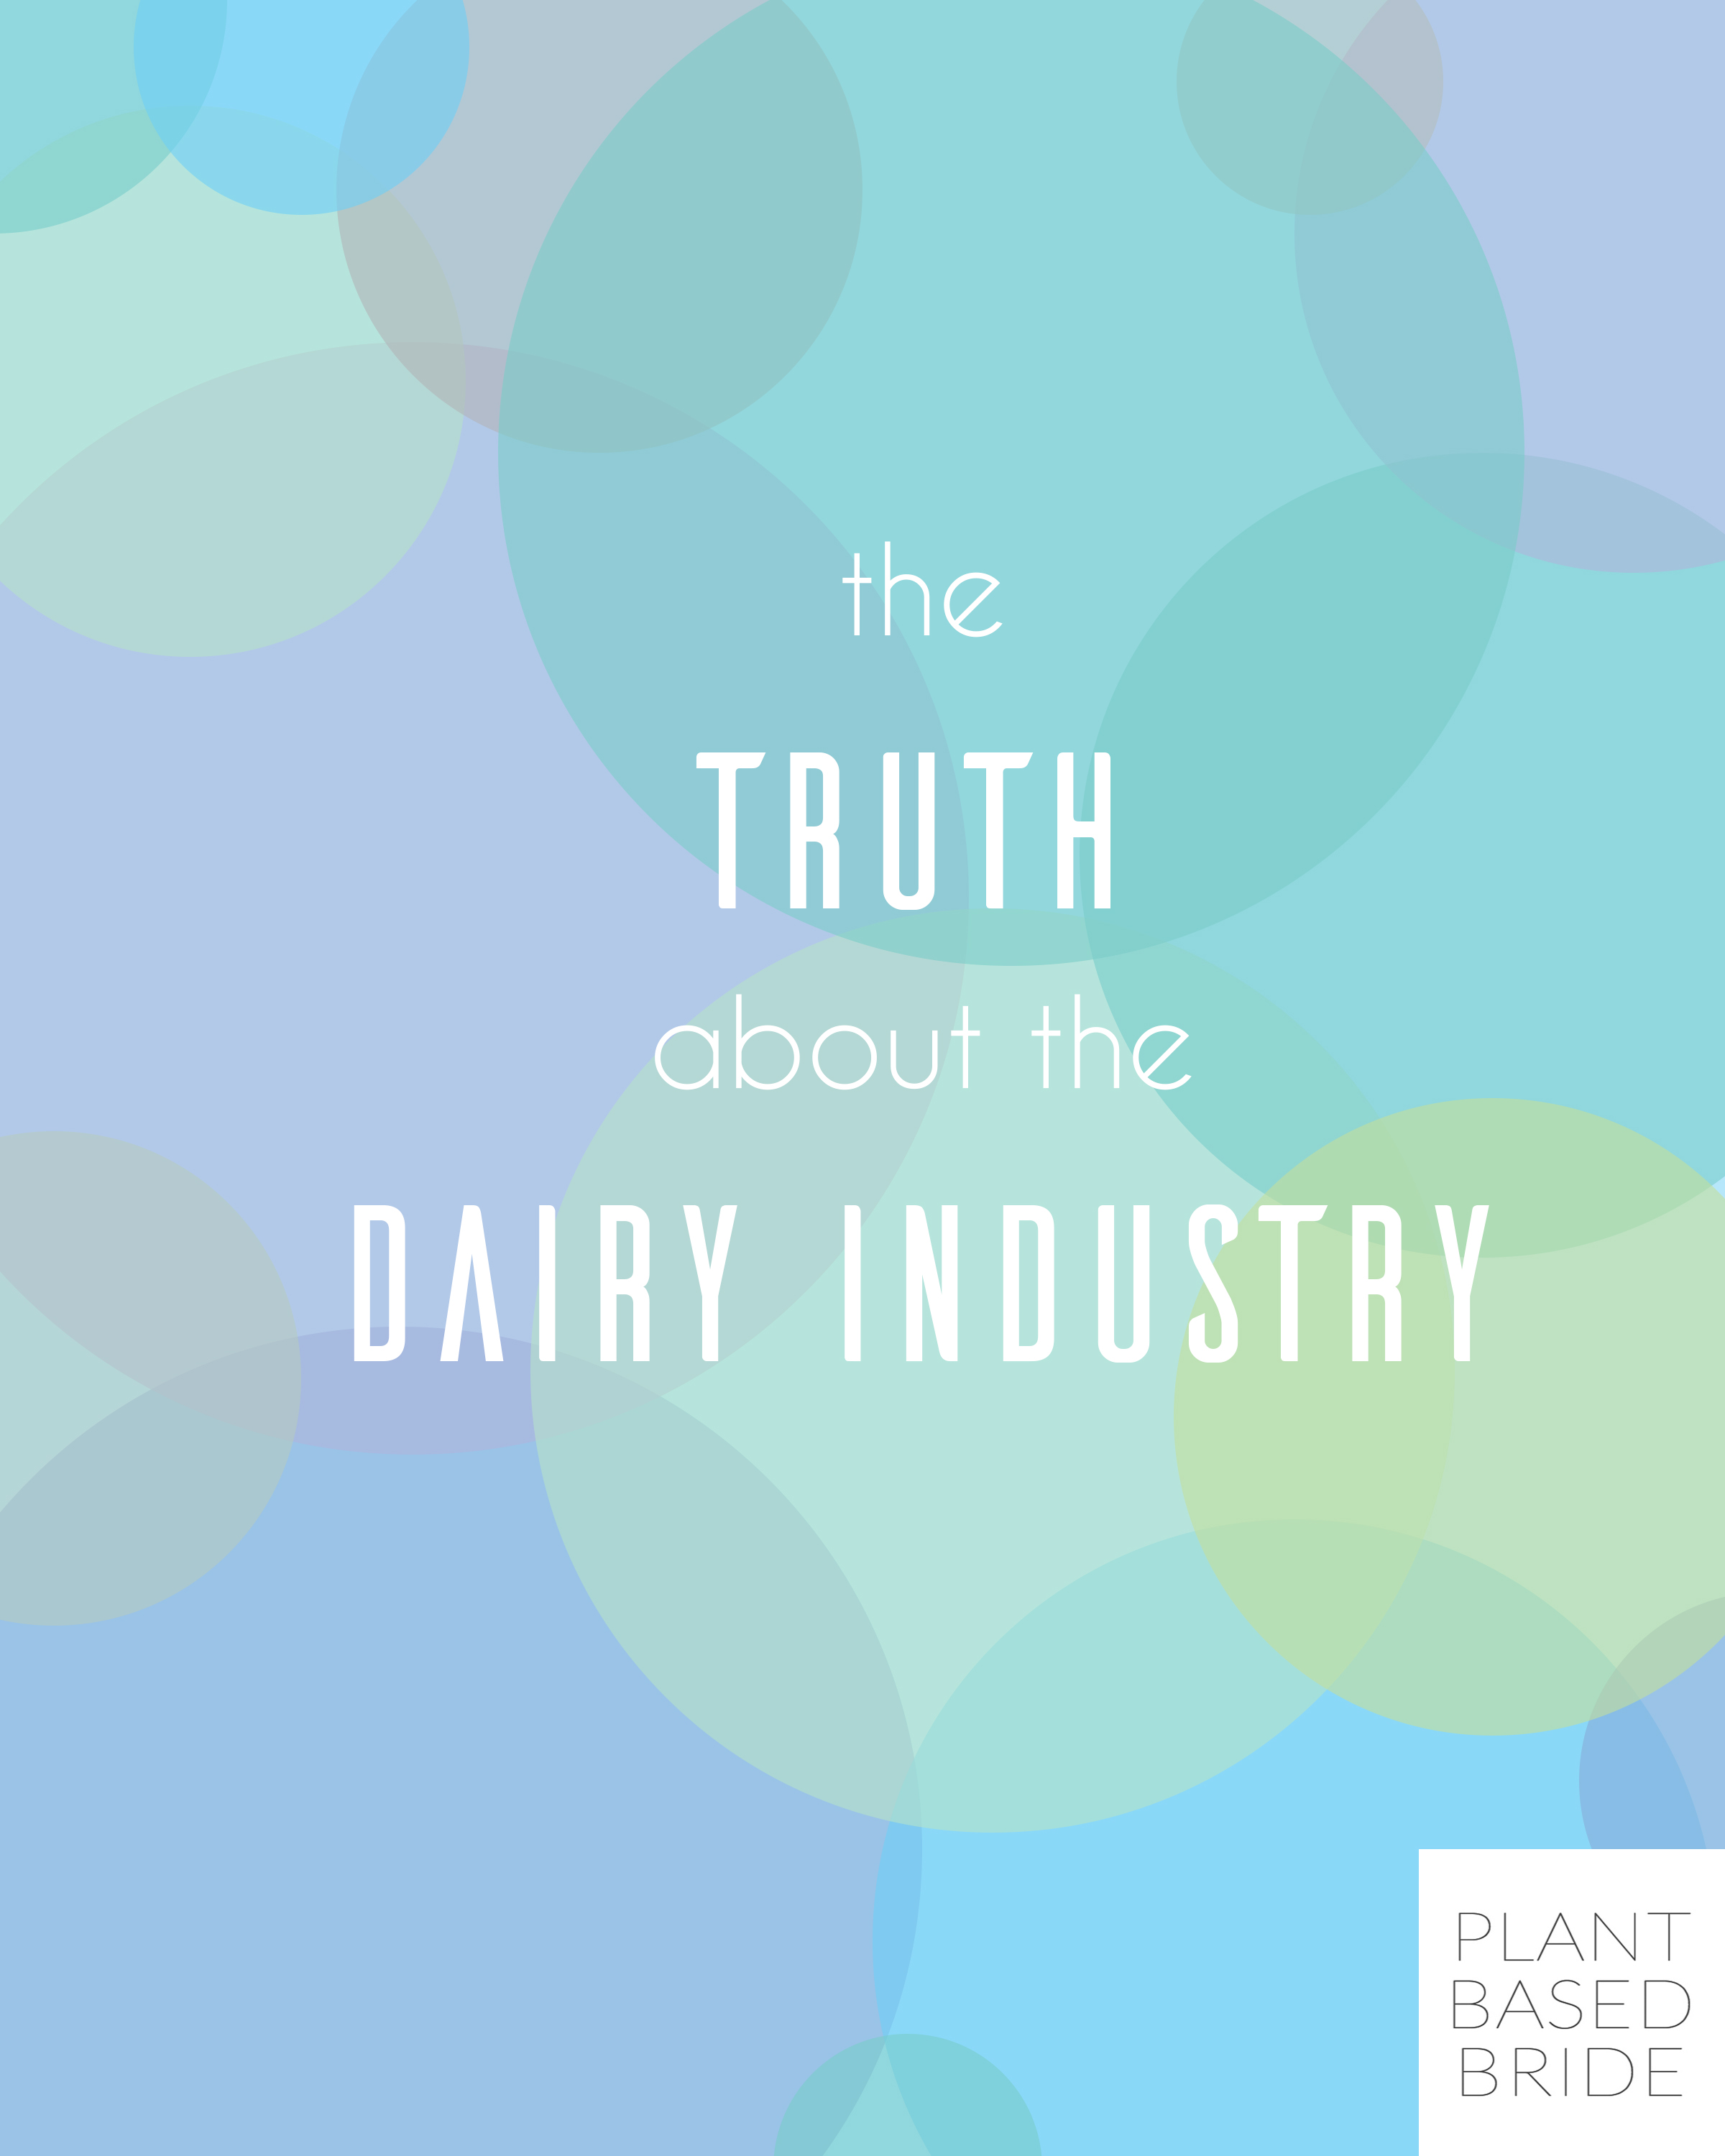 Everyone knows milk is good for you.  But what if it isn't?  Learn the truth about the dairy industry once and for all over on plantbasedbride.com